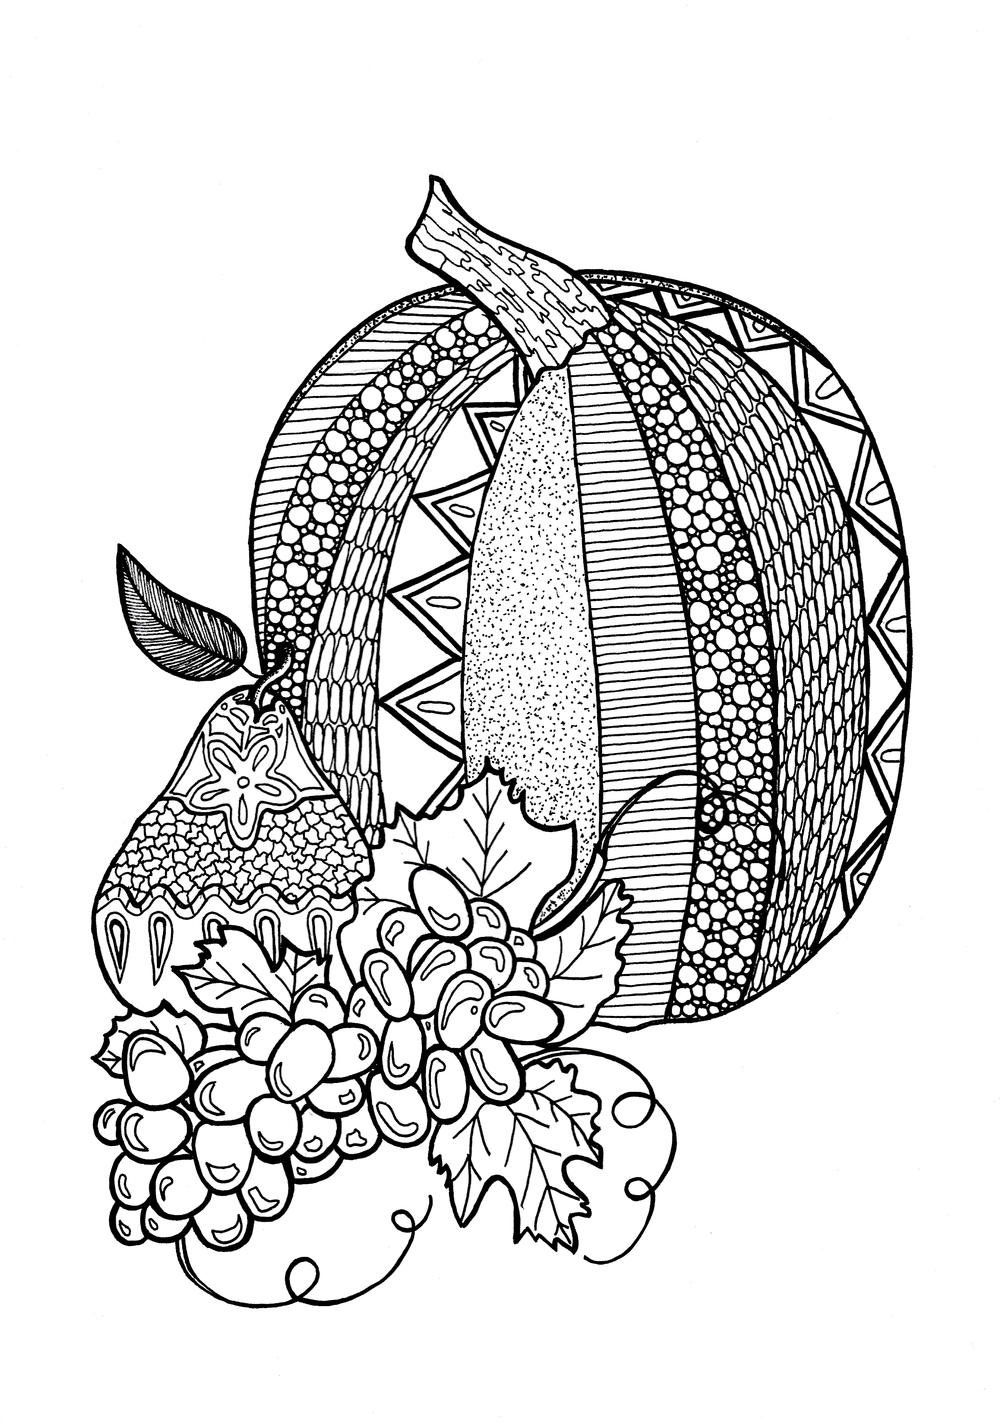 Textured Pumpkin Adult Coloring Page